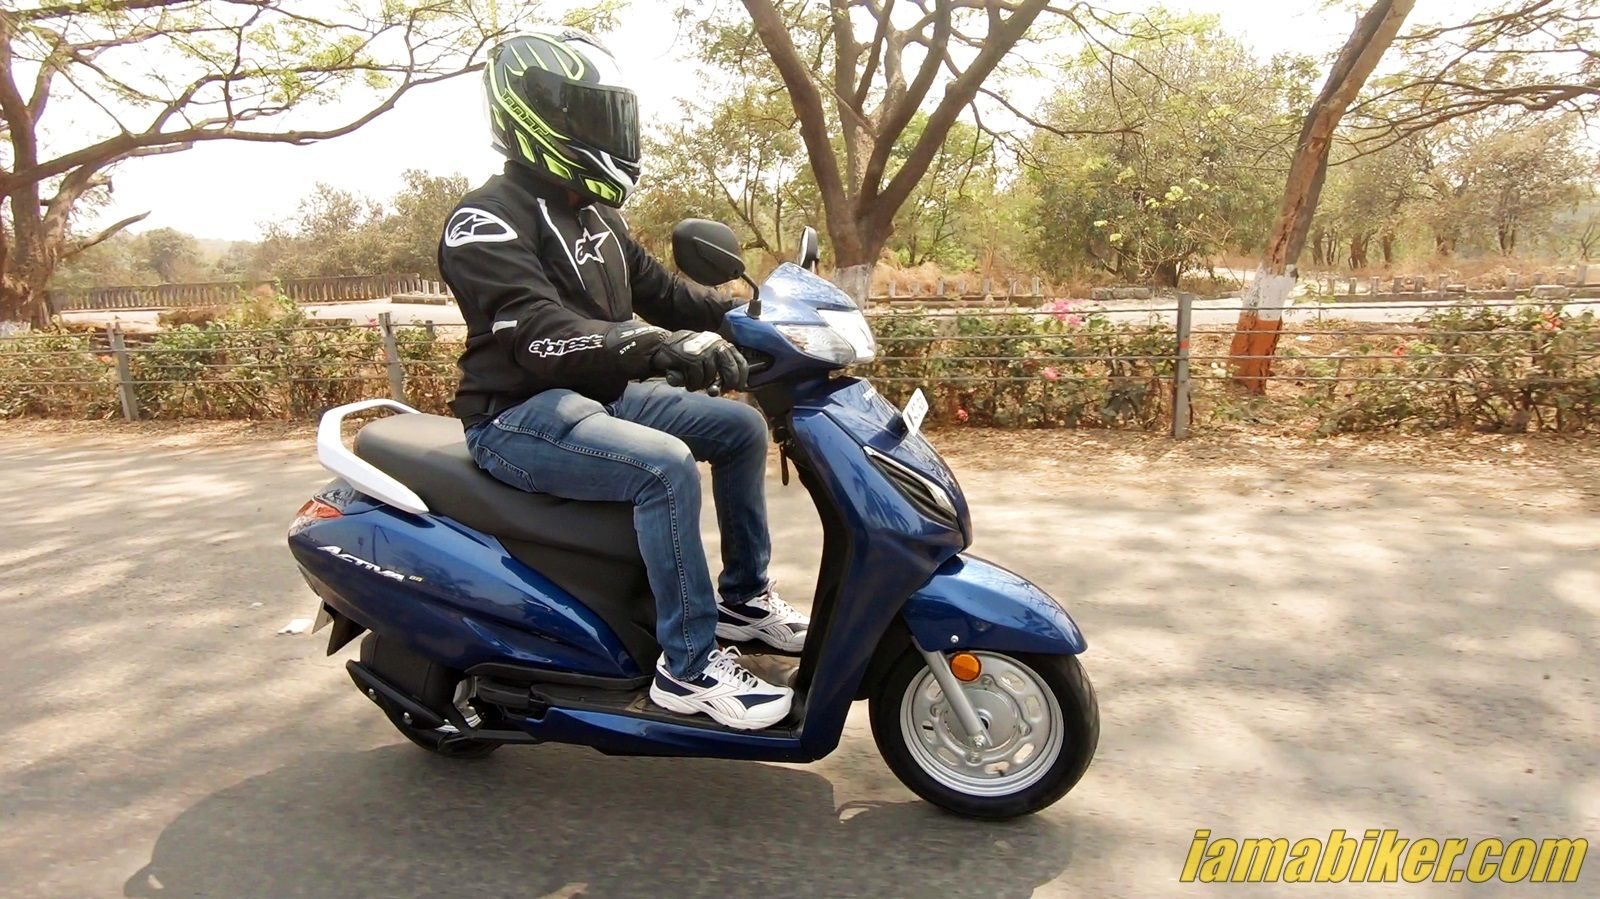 Honda Activa 6g Activa 125 And Sp 125 Prices Hiked Honda